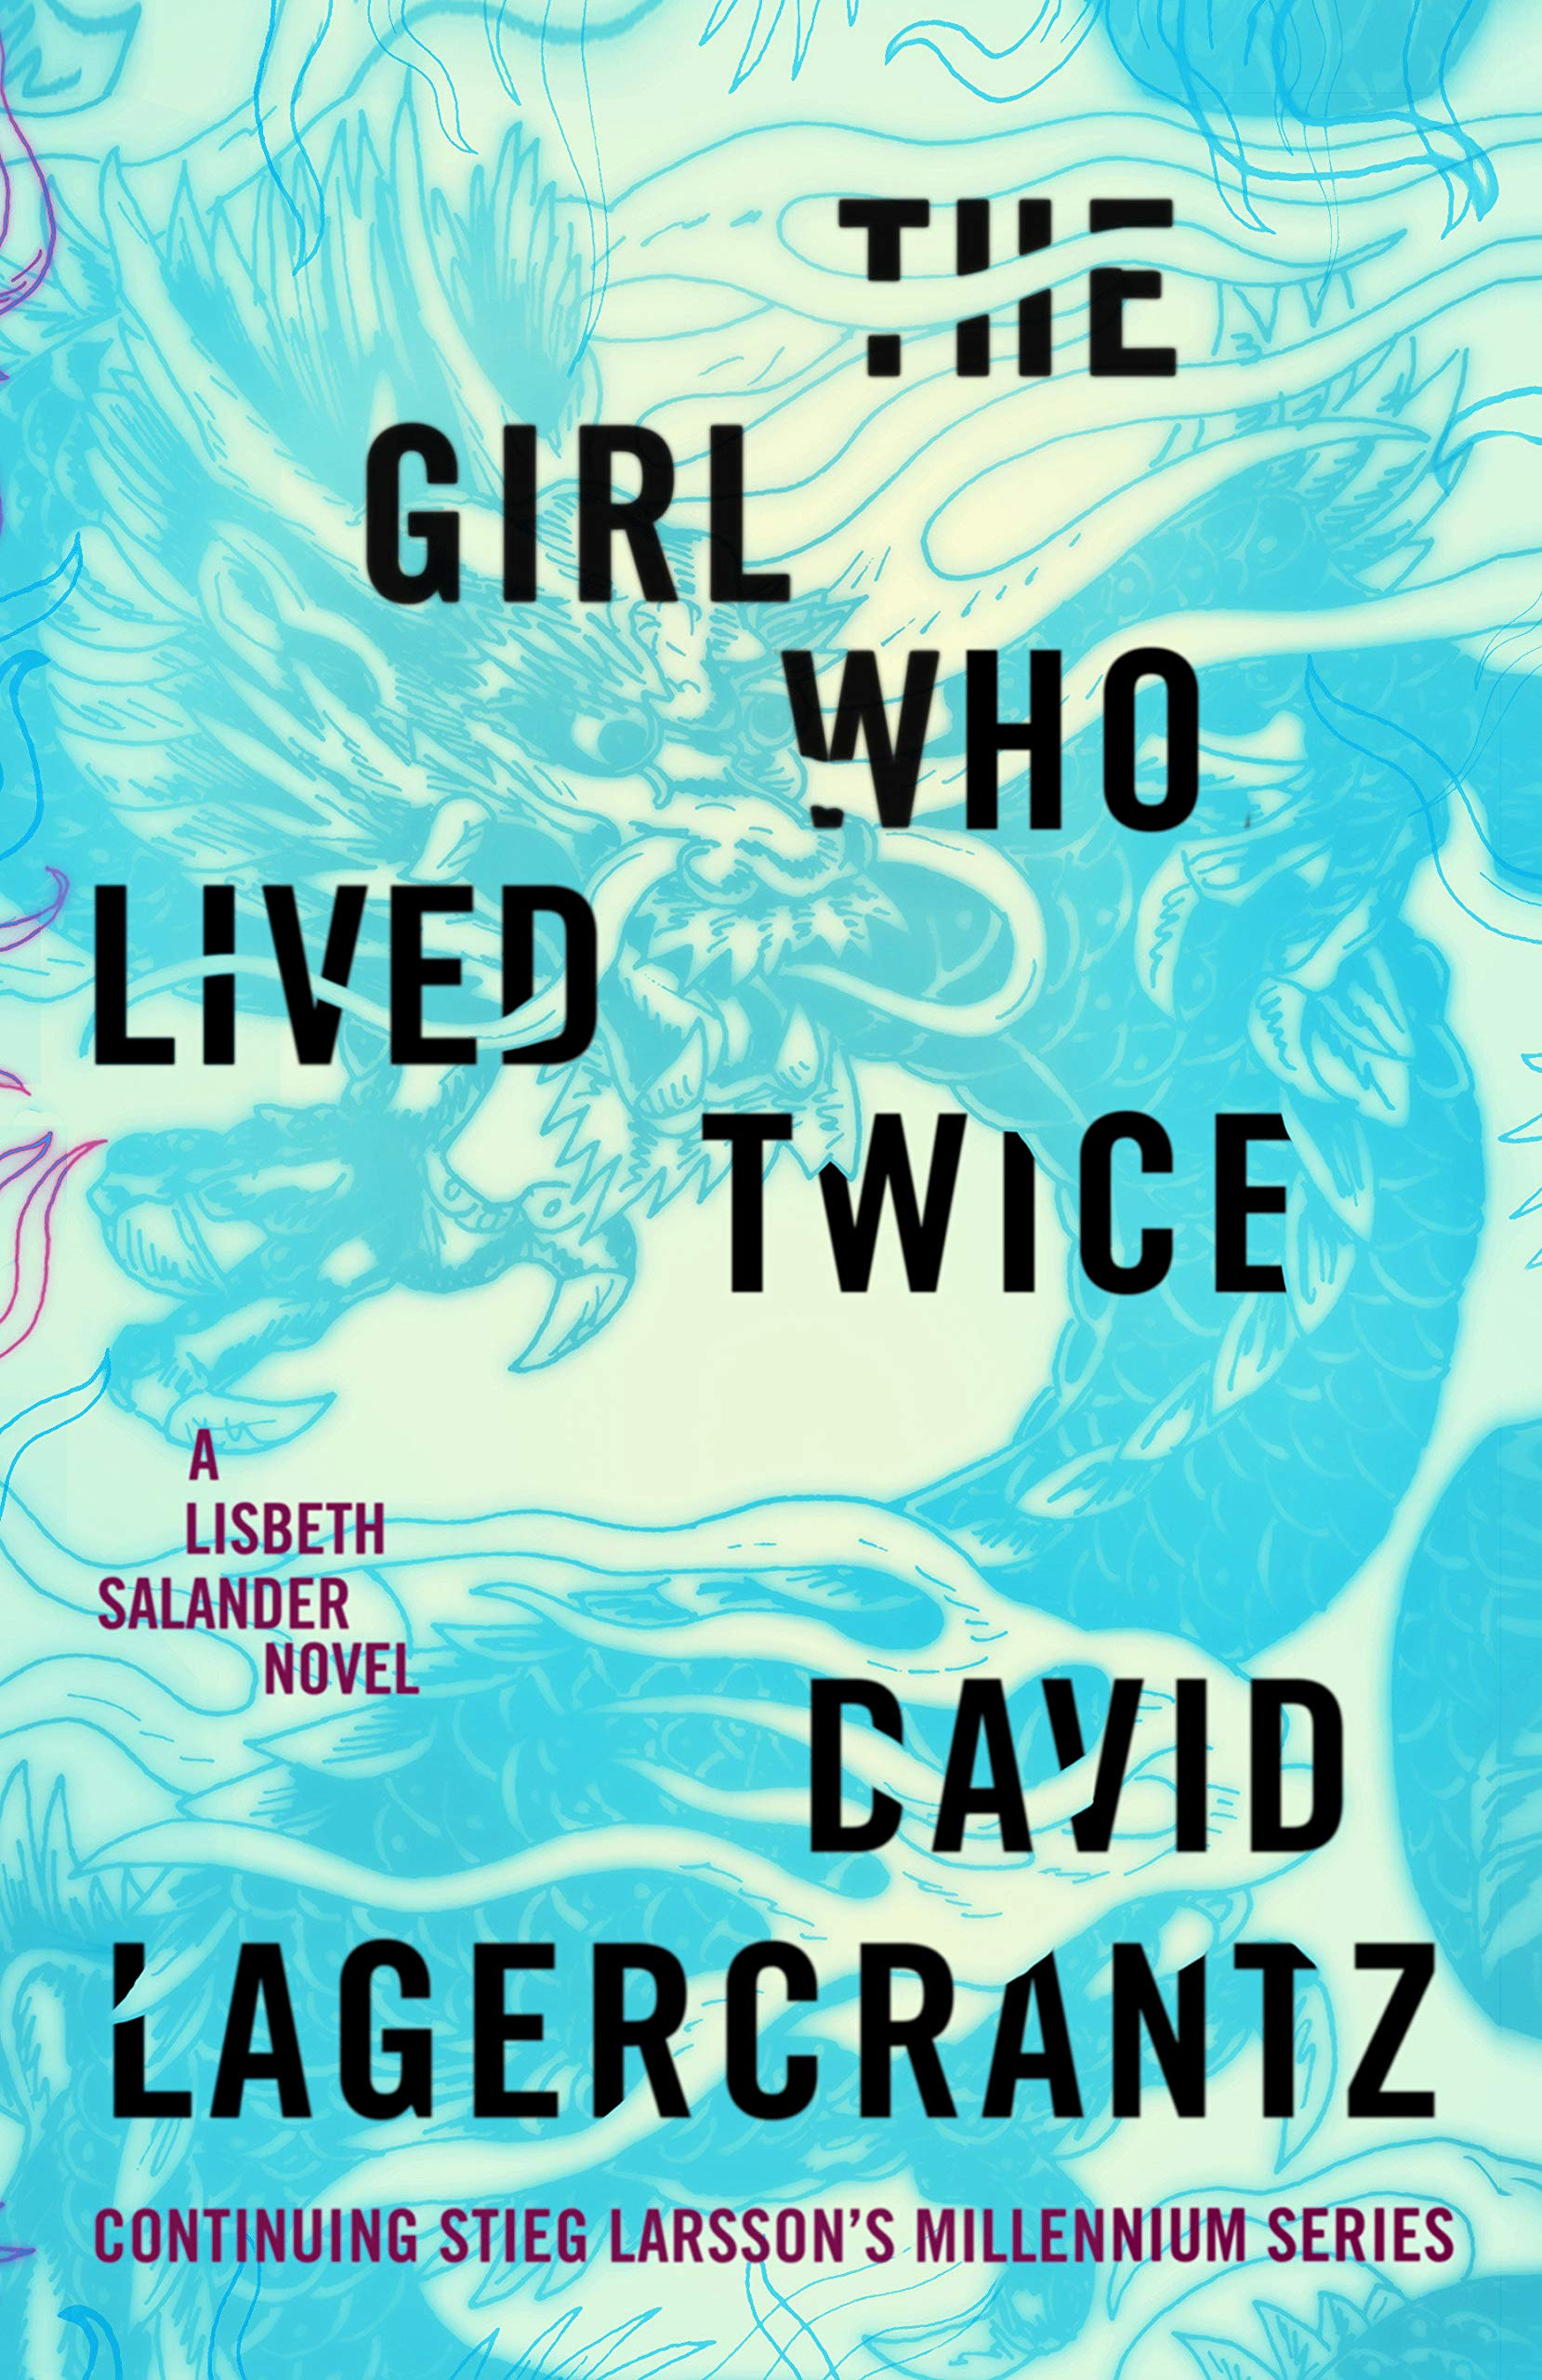 The Girl Who Lived Twice: A Lisbeth Salander novel, continuing Stieg Larsson's Millennium Series (Millennium #6)